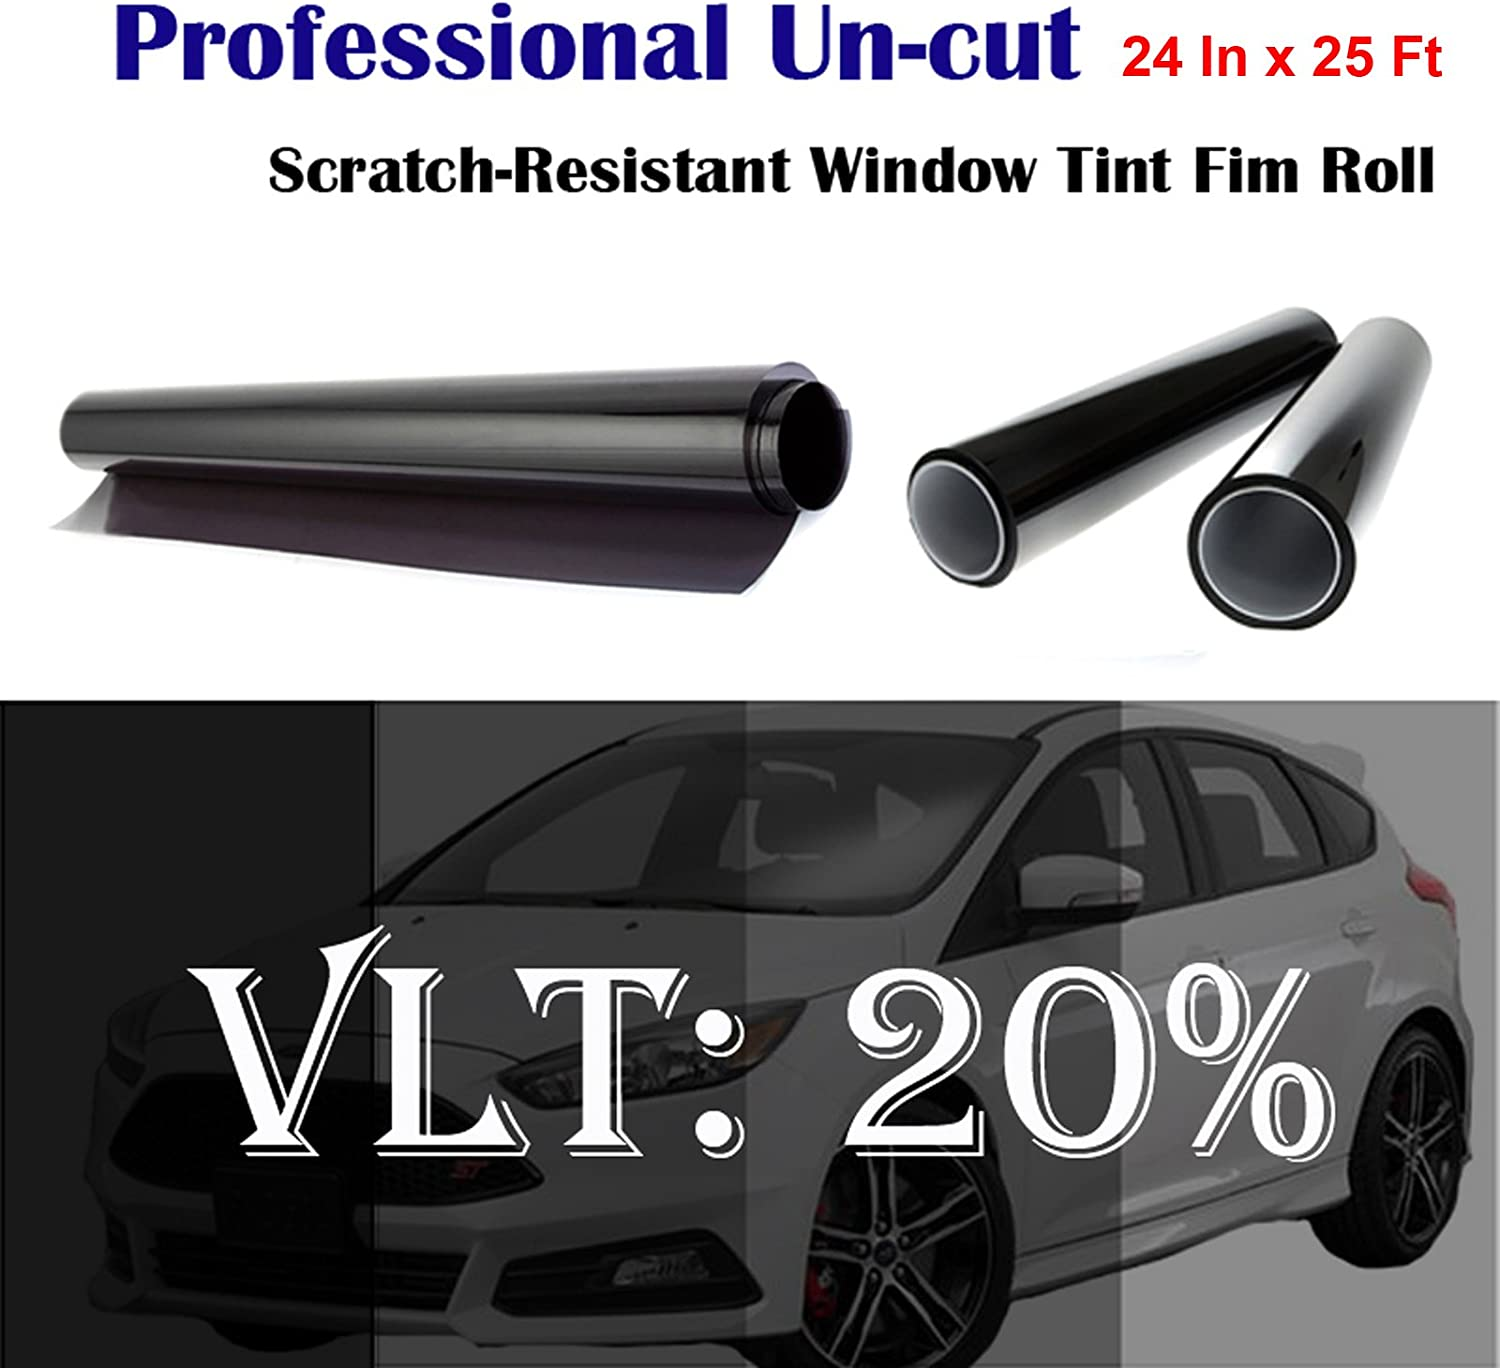 "Mkbrother Uncut Roll Window Tint Film 20% VLT 24"" in x 25' Ft Feet Car Home Office Glasss"